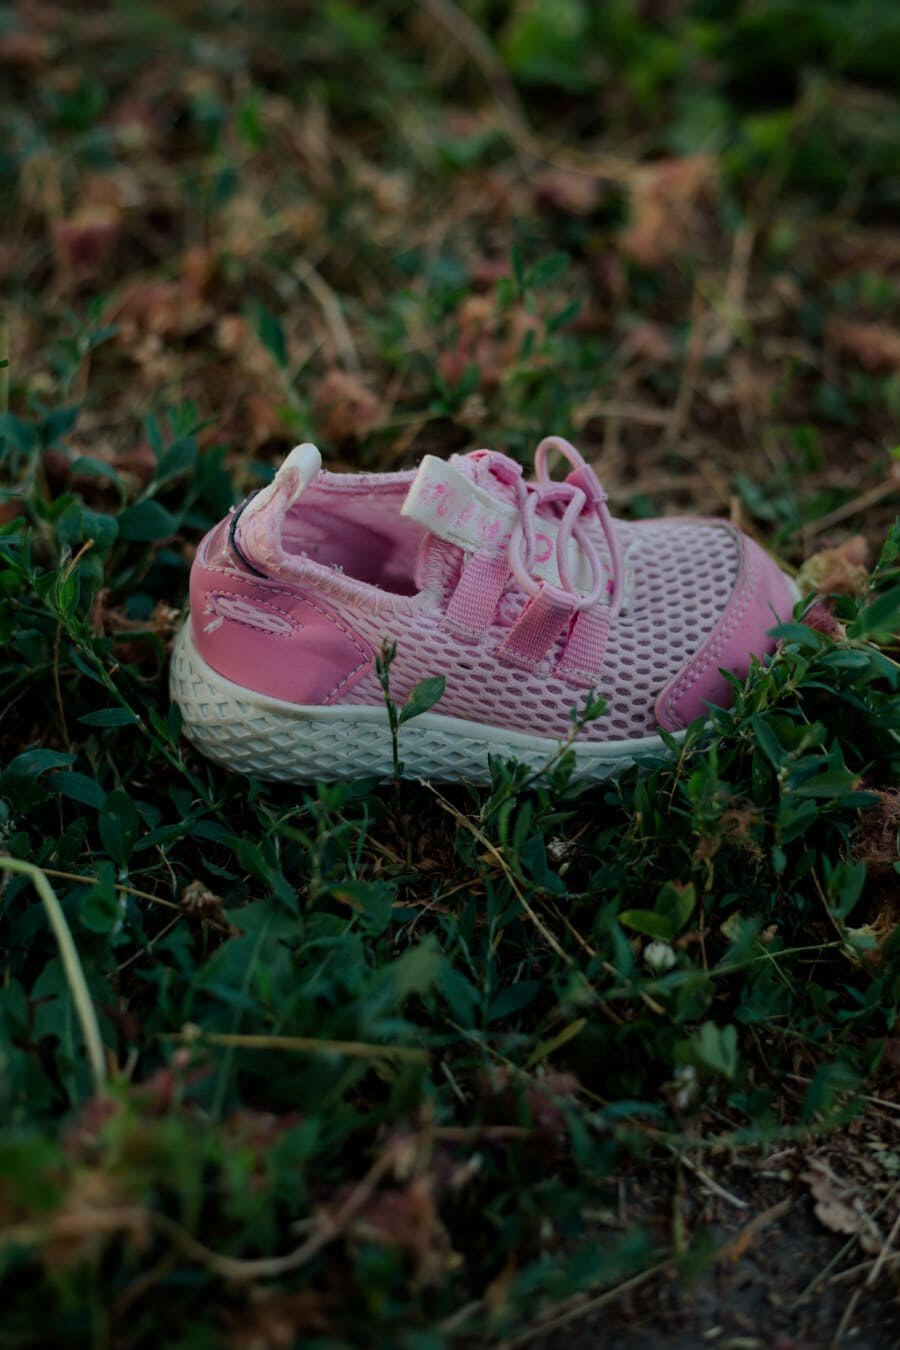 baby, pinkish, sneakers, footwear, grass, covering, outdoors, nature, fashion, flower